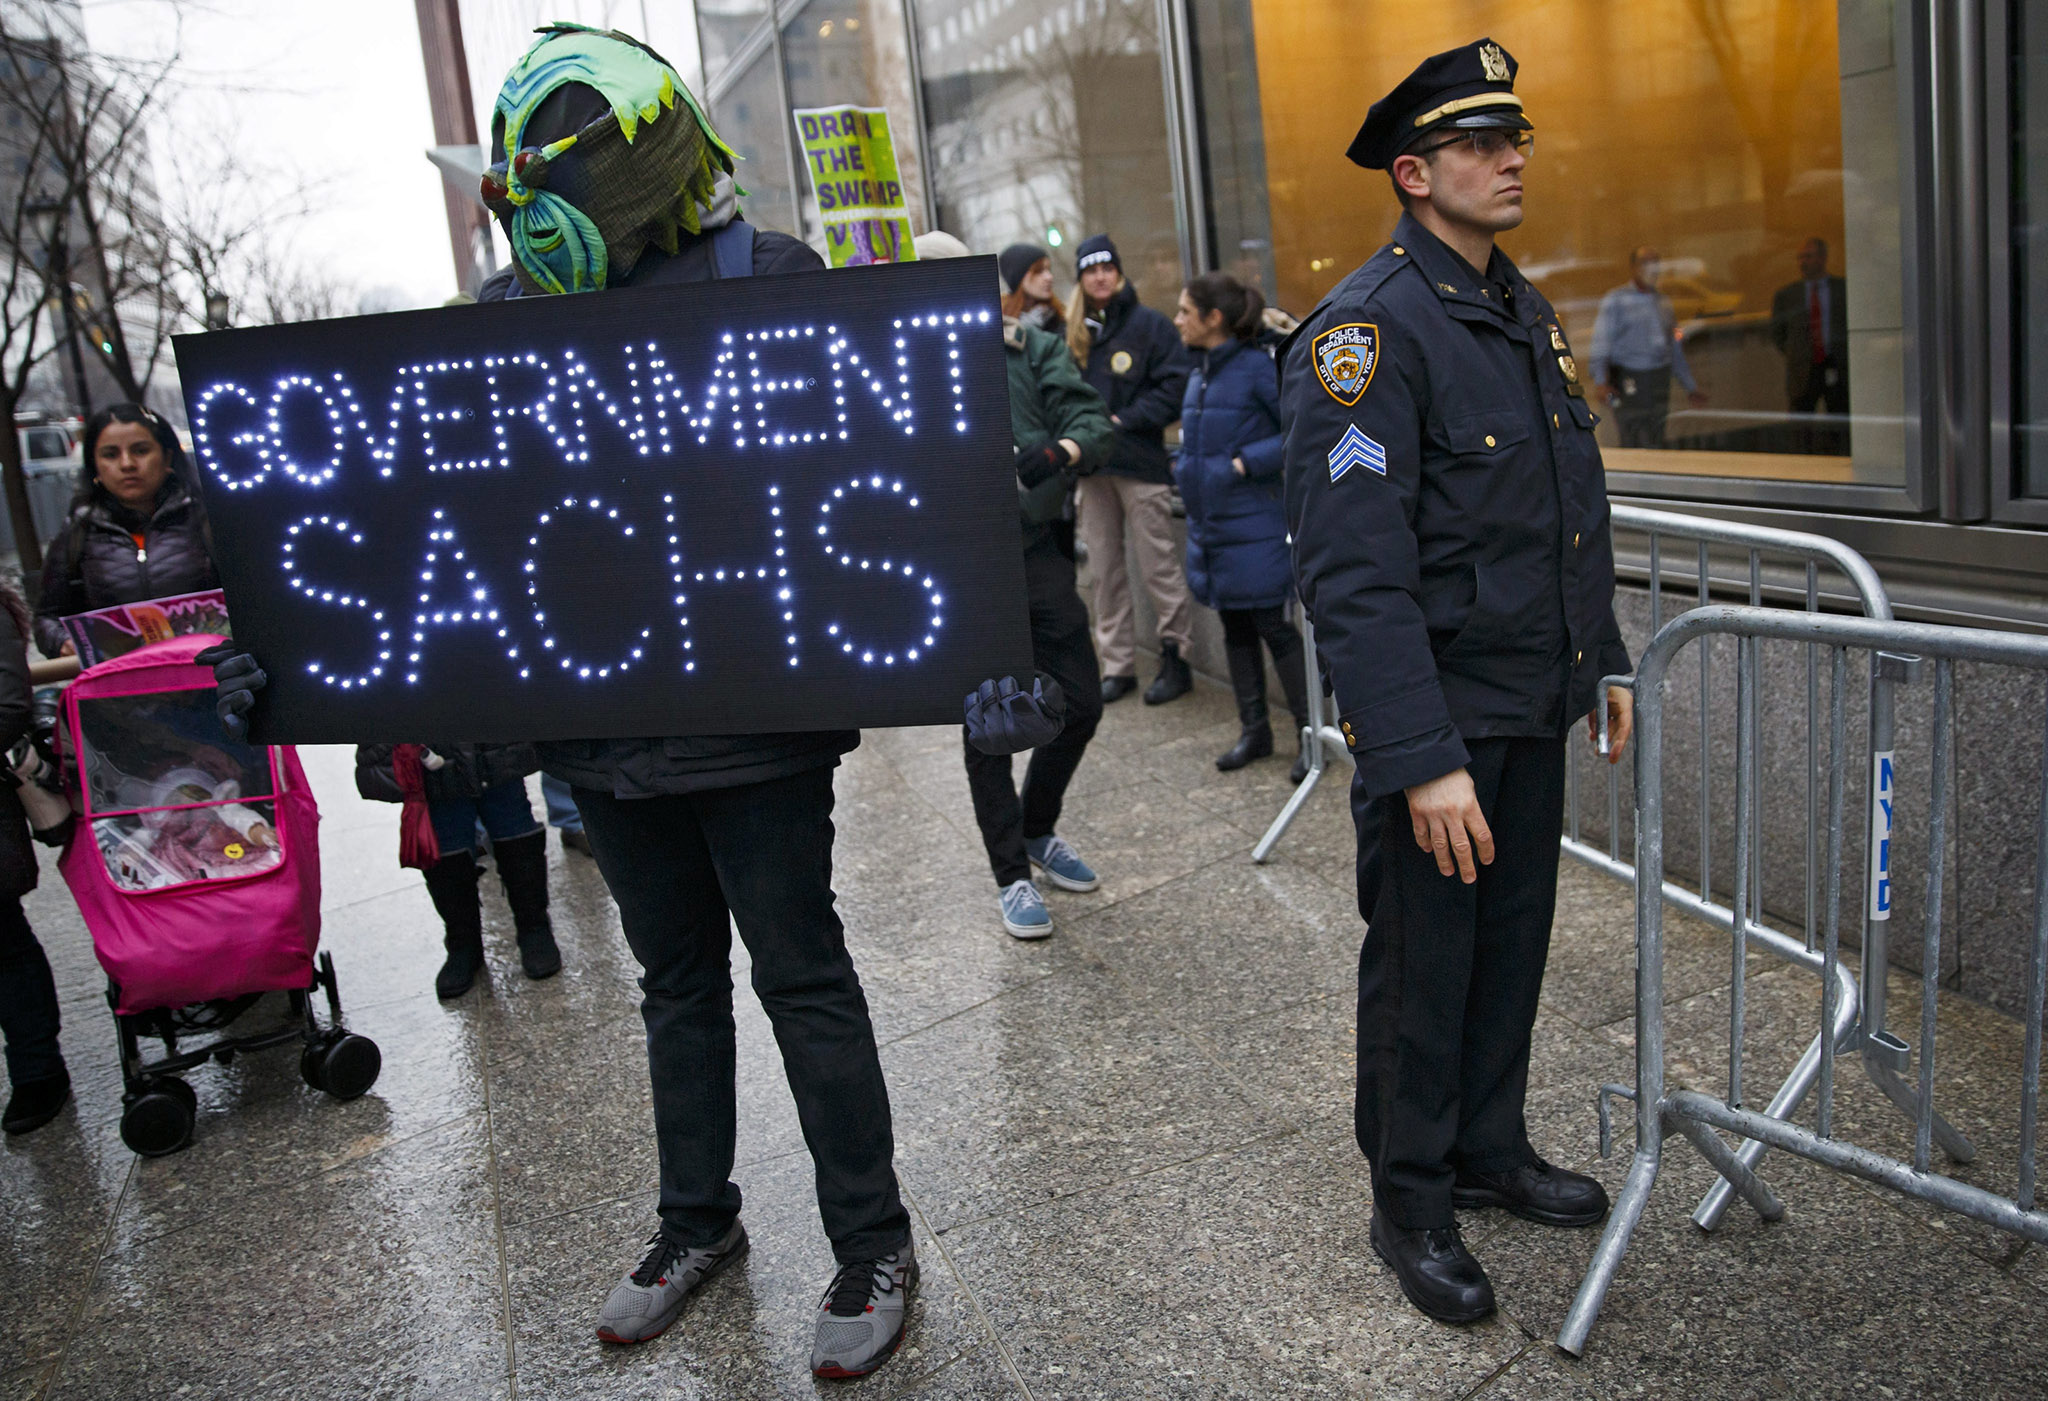 A man holds a sign while standing next to a place officer in front of the offices of the financial firm Goldman Sachs during a protest against the company's involvement and influence with the incoming Trump administration in New York, New York, USA, 17 January 2017. The group was planning on camping out in front of the company's offices until 20 January when US President-elect Trump is scheduled to be sworn in as the next US President.  EPA/JUSTIN LANE